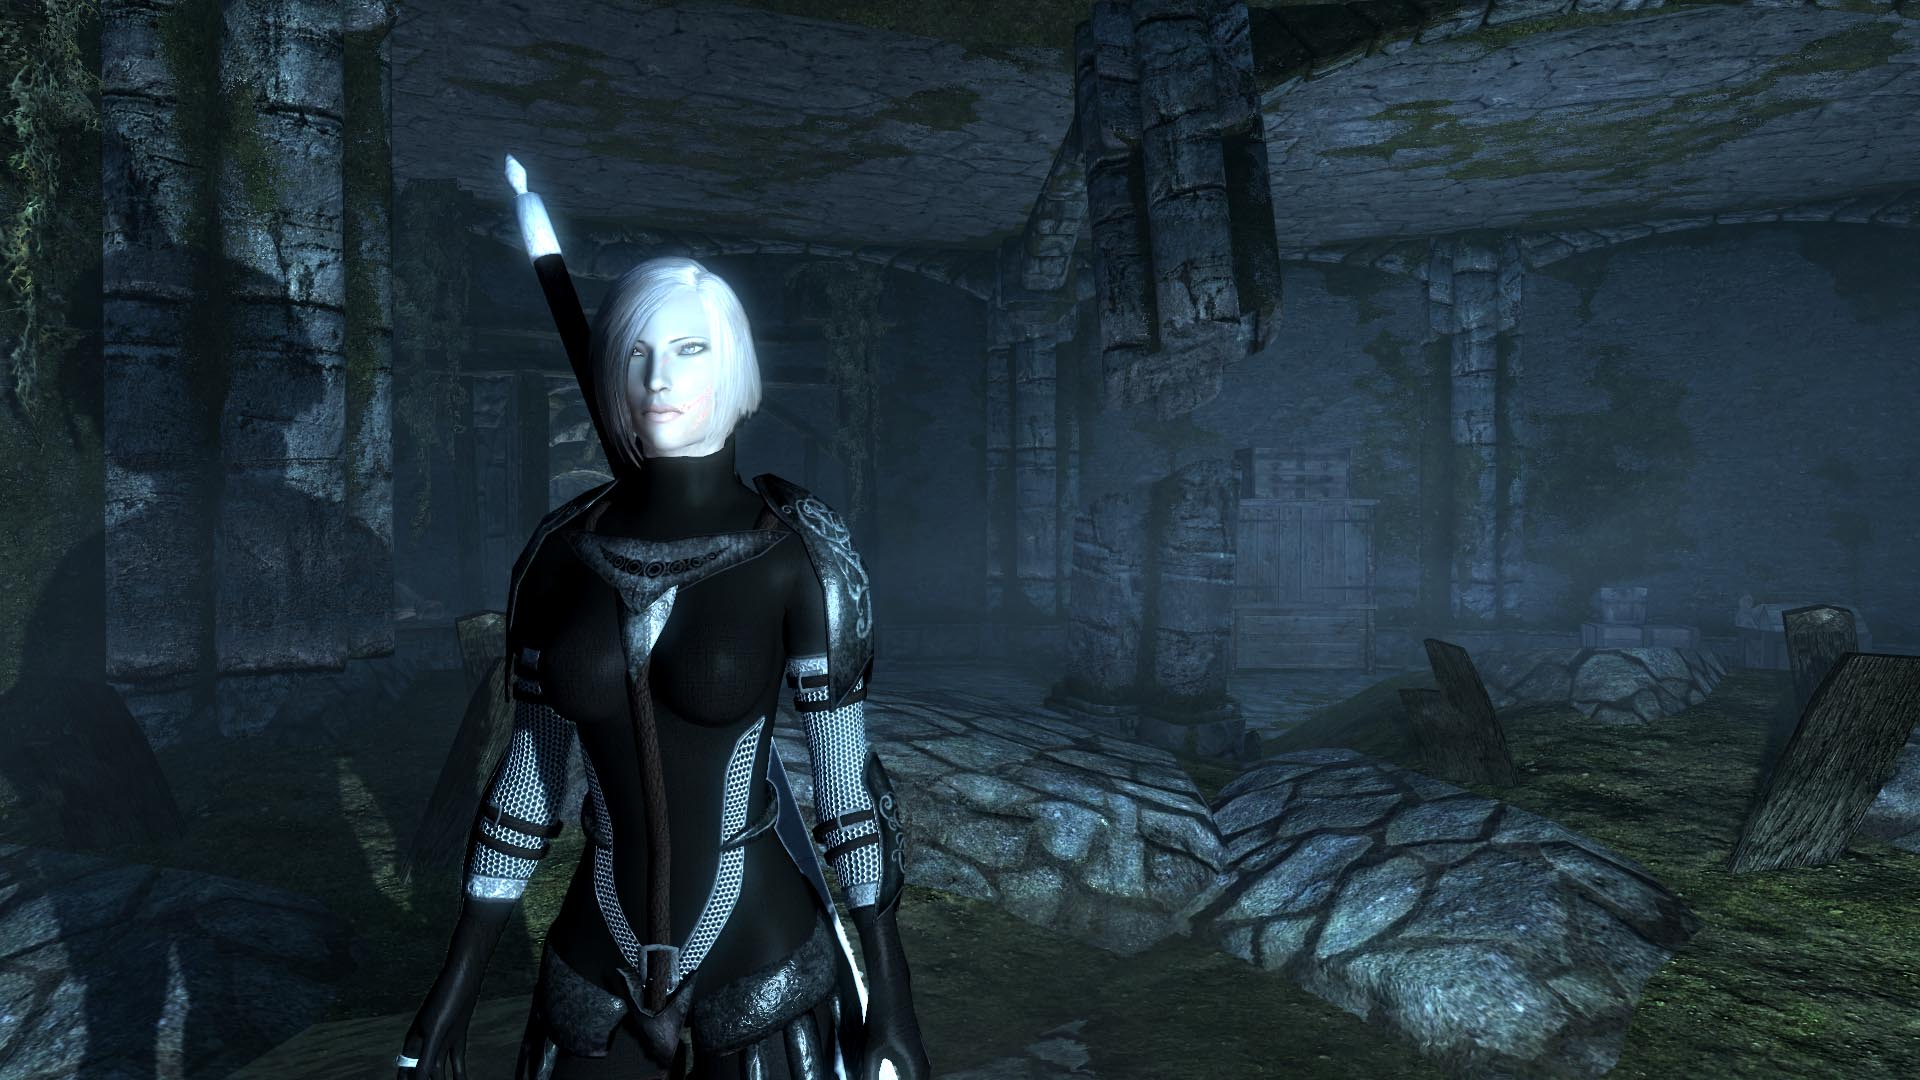 Claymore Wallpaper Hd Claymore From The Anime At Skyrim Nexus Mods And Community